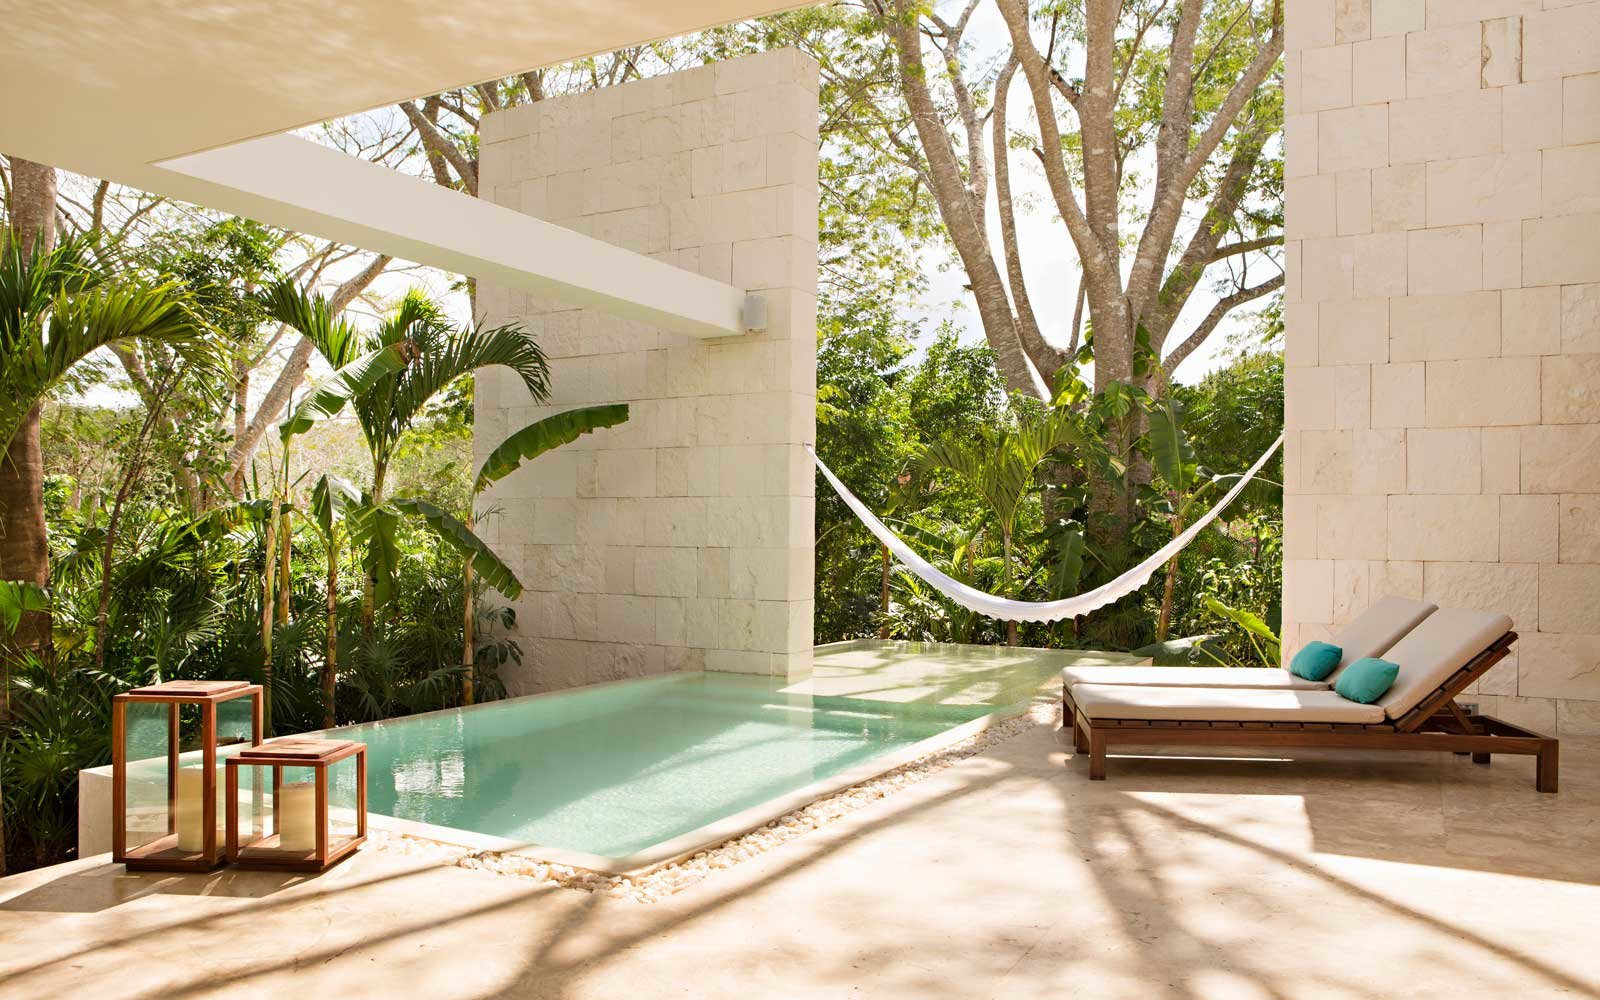 Luxury Resort in the Yucatan Mexico